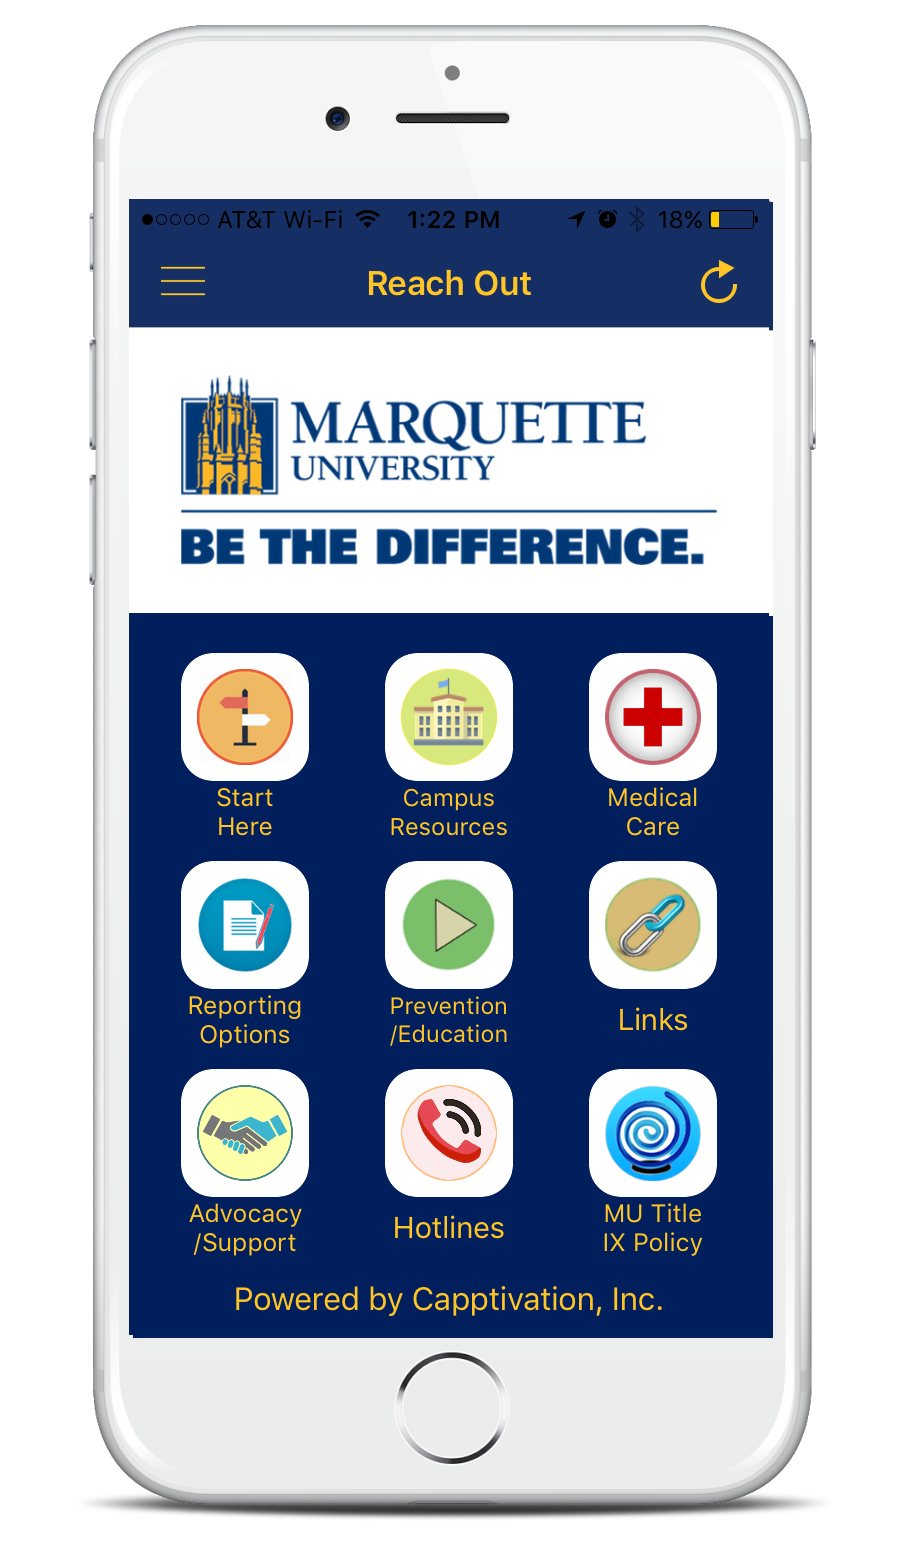 Image of Reach Out Marquette app